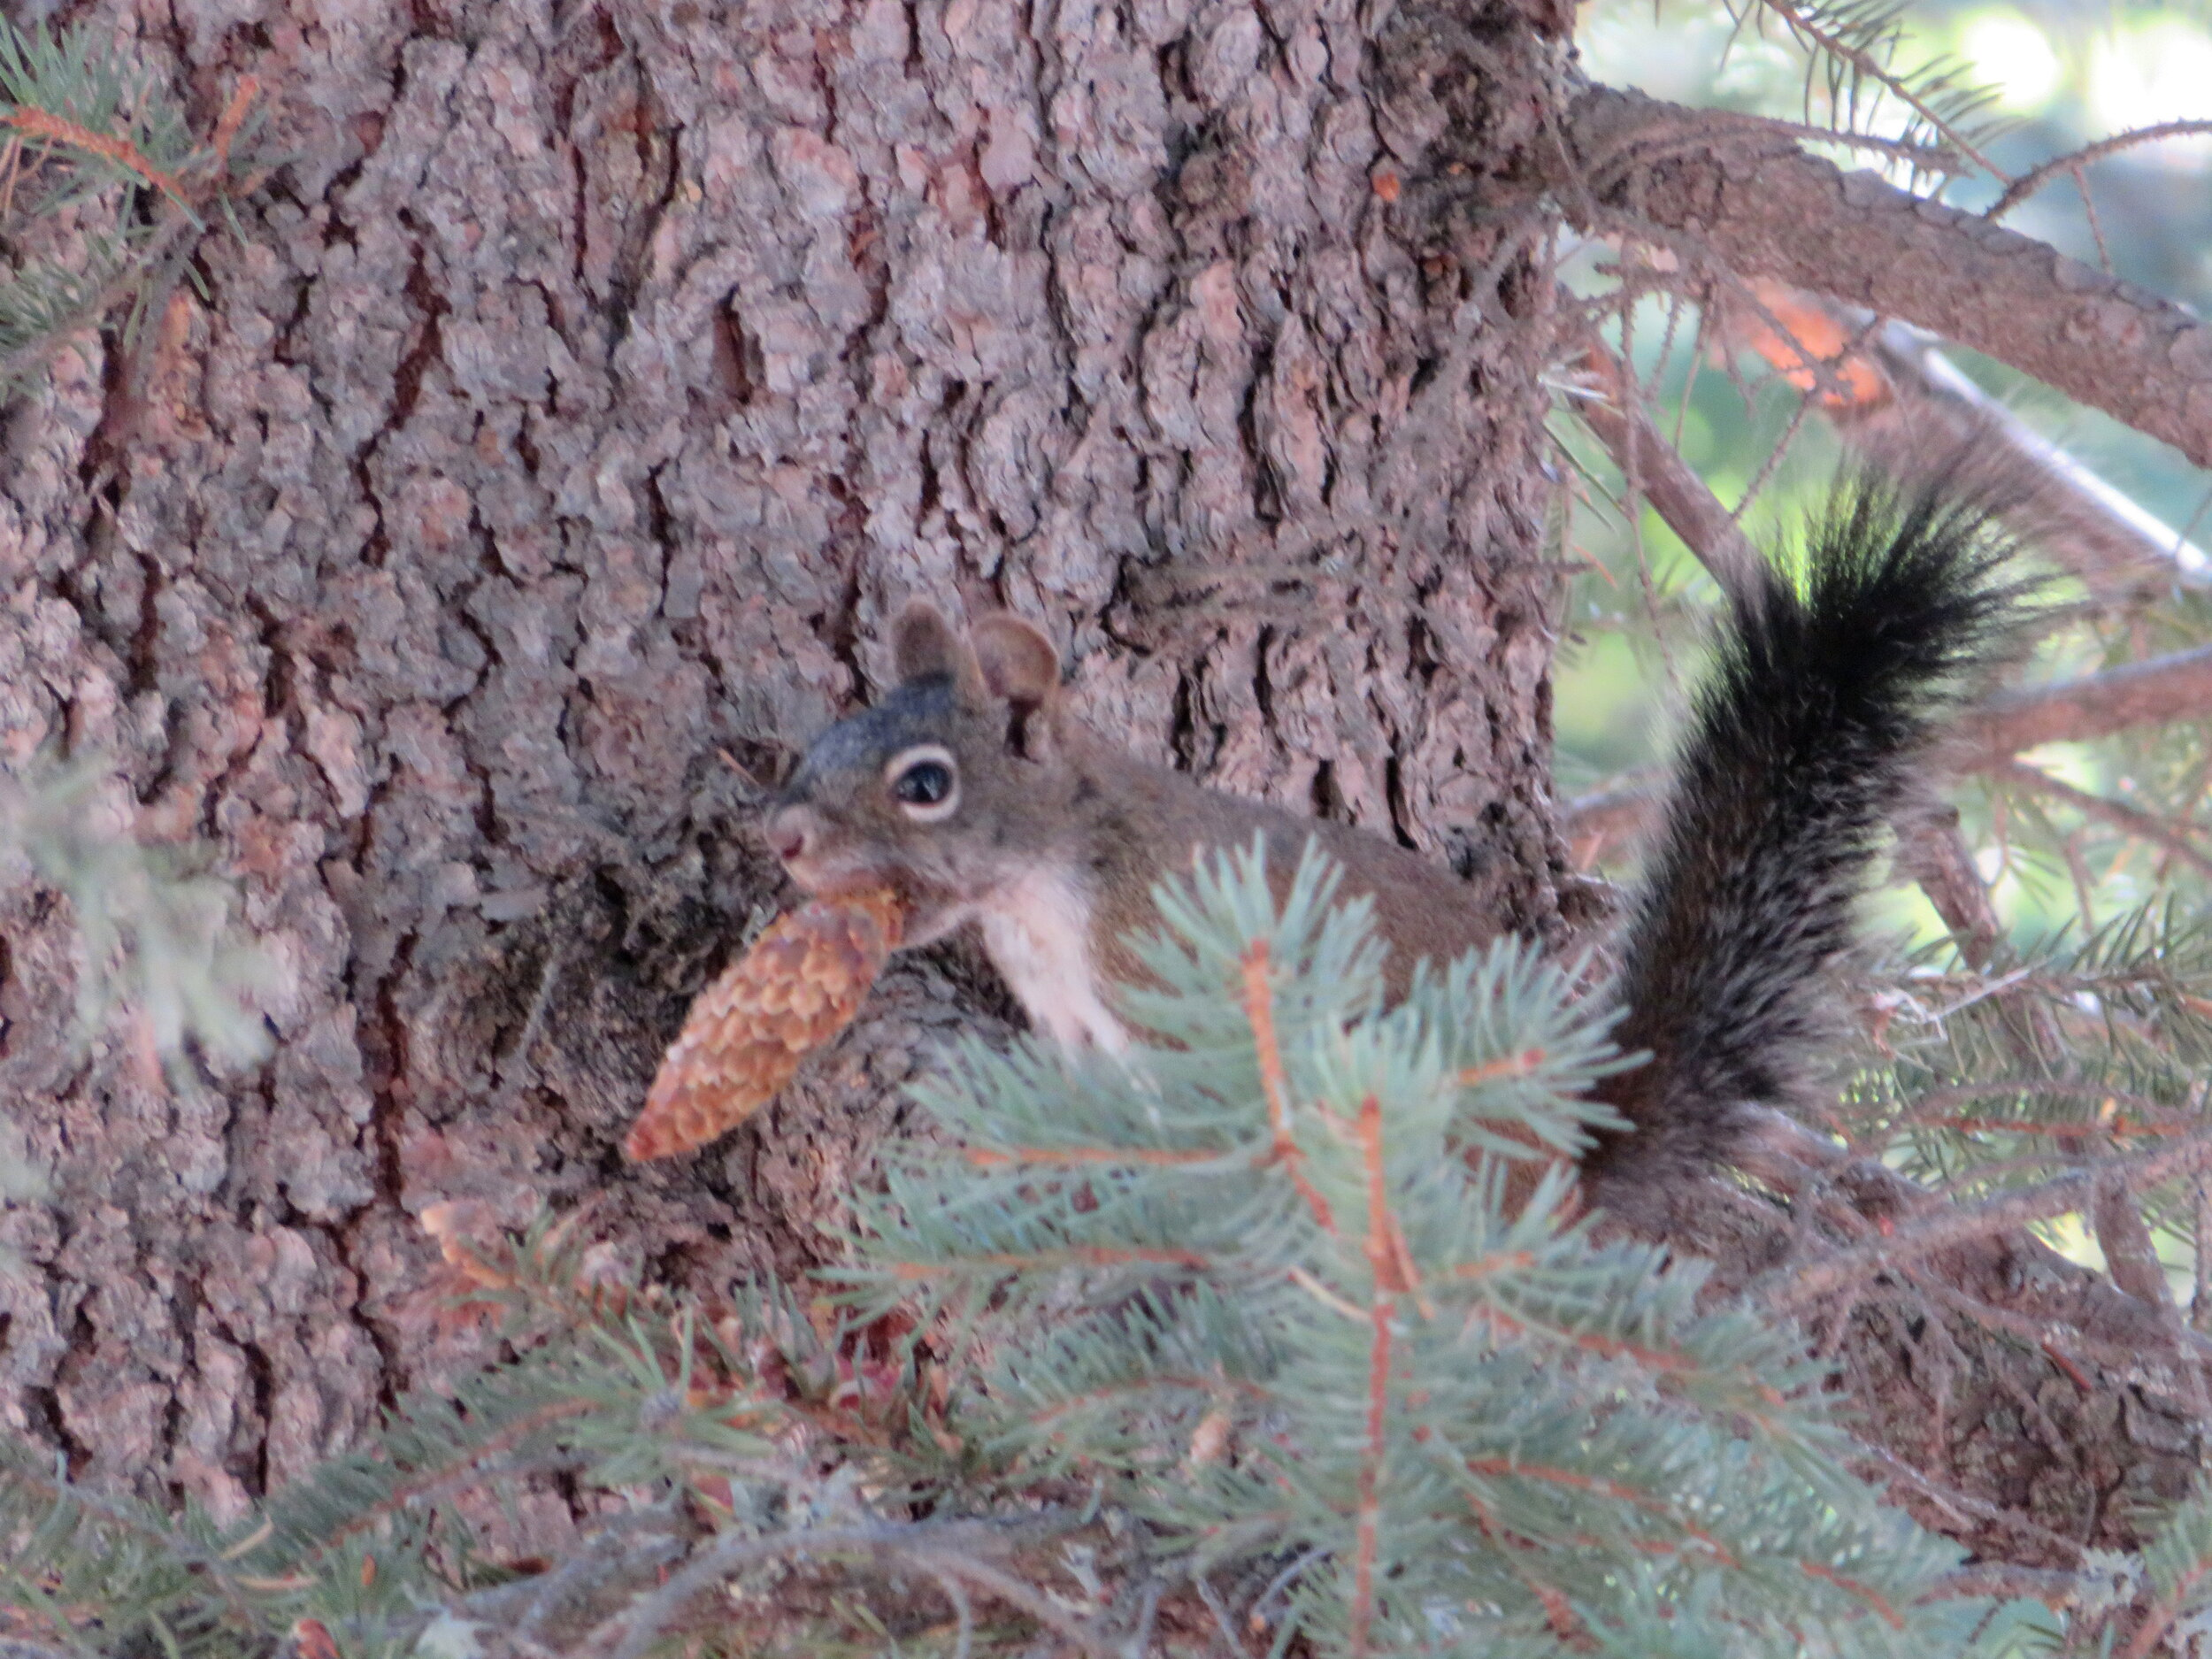 An Arizona gray squirrel gets ready for winter.